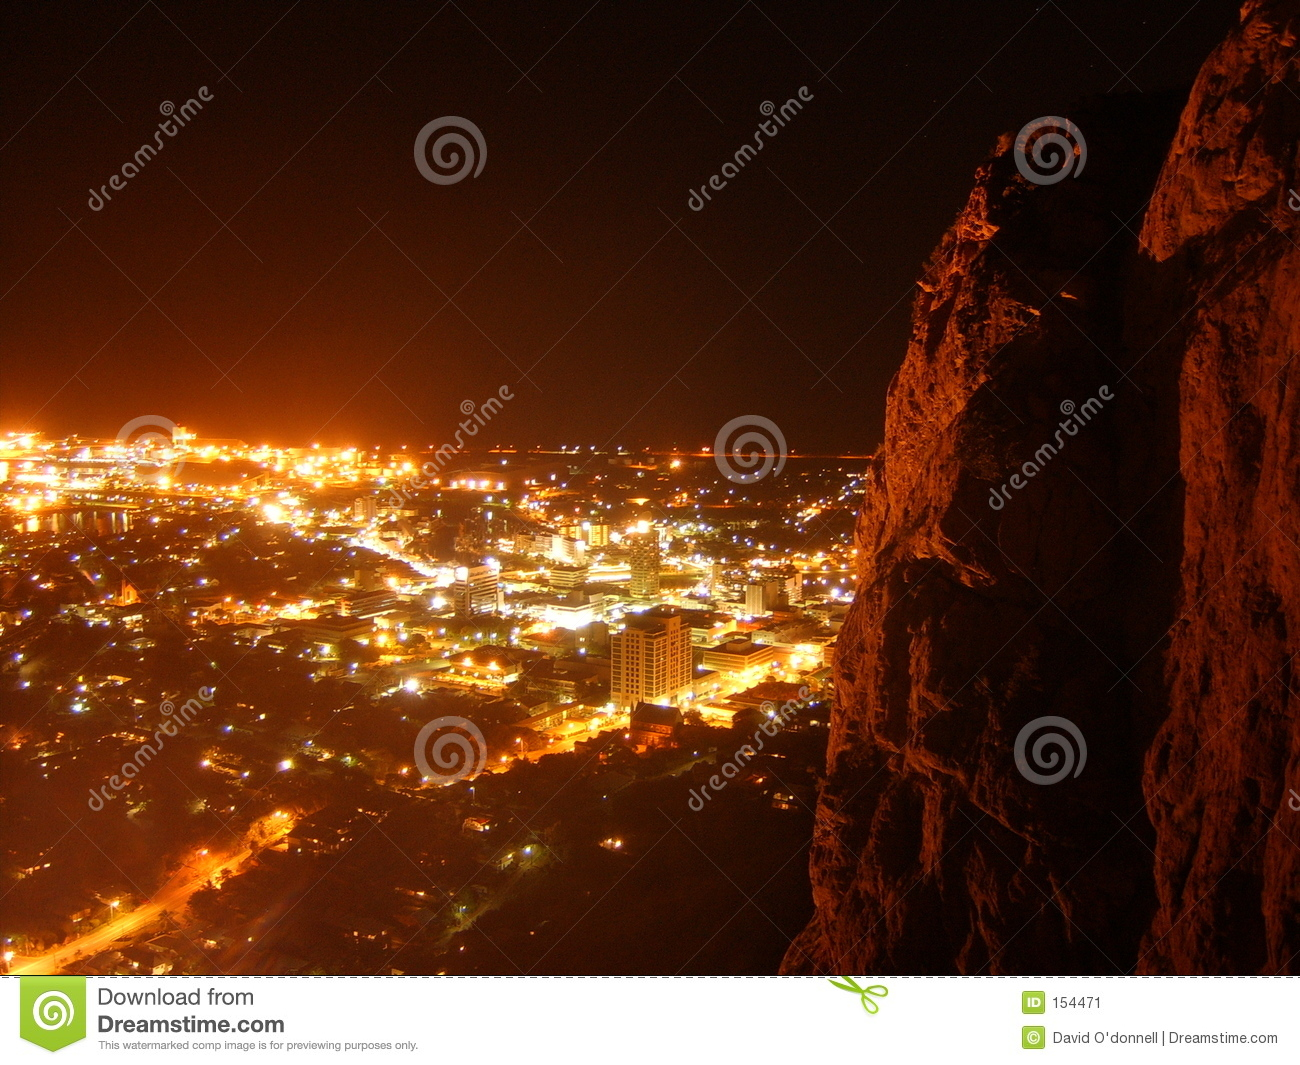 Townsville at night